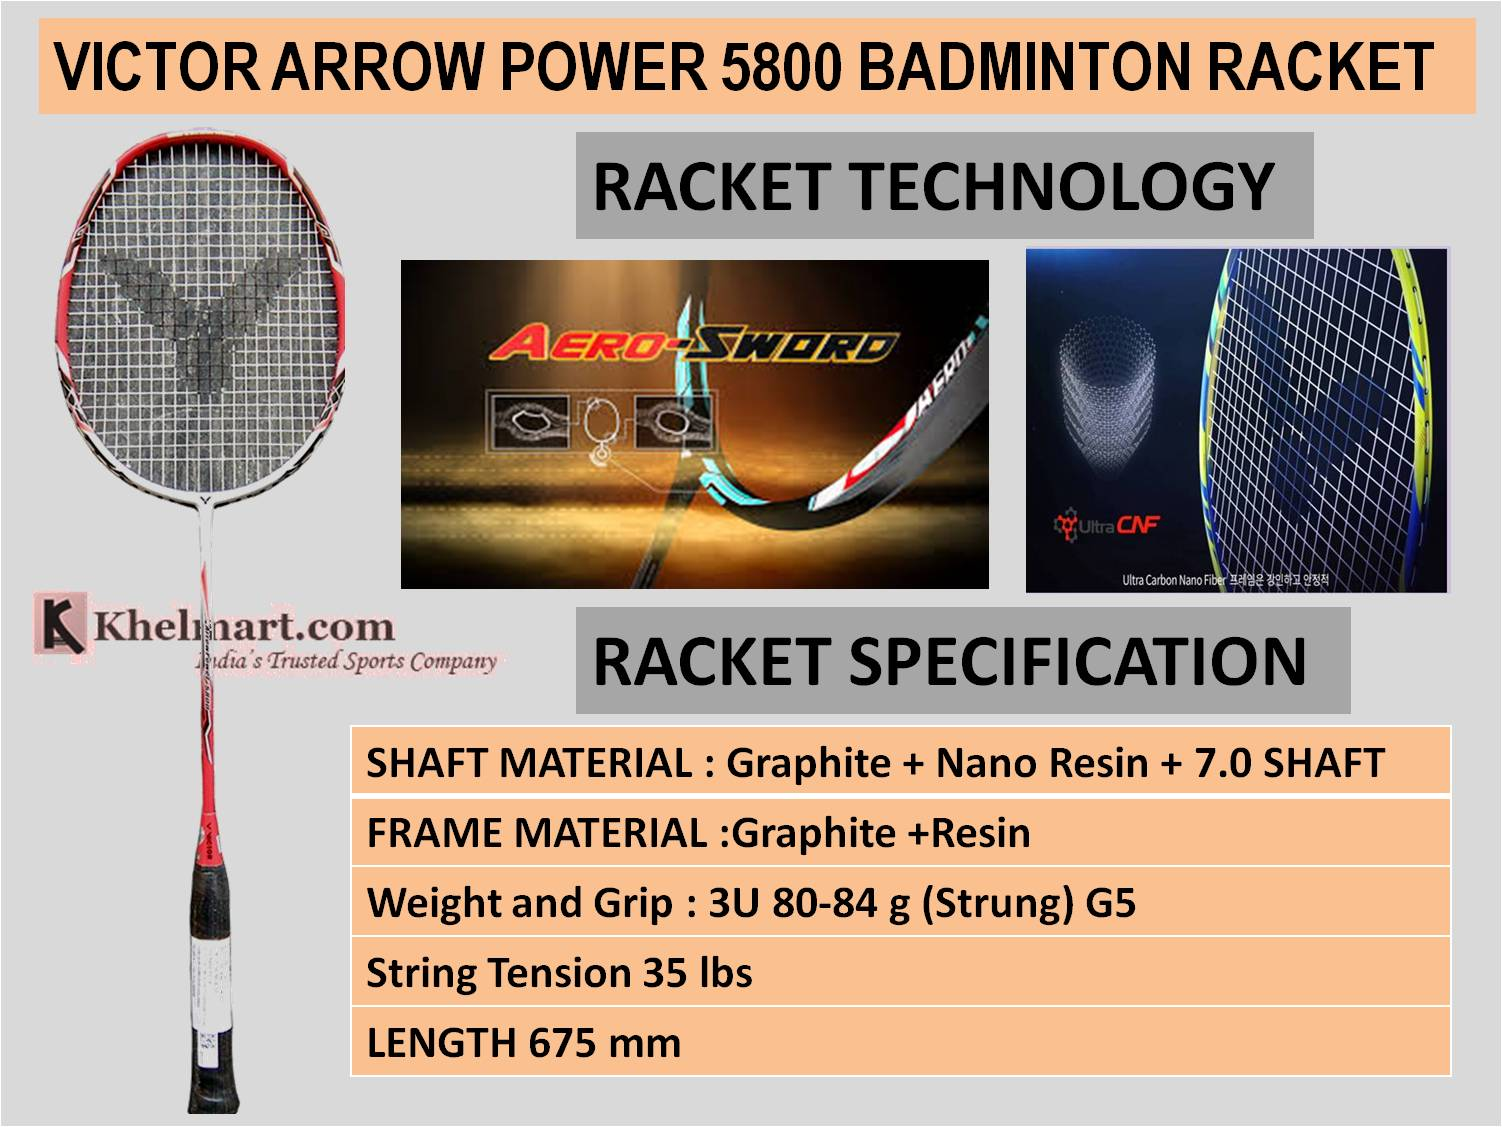 VICTOR_ARROW_POWER_5800_BADMINTON_RACKET